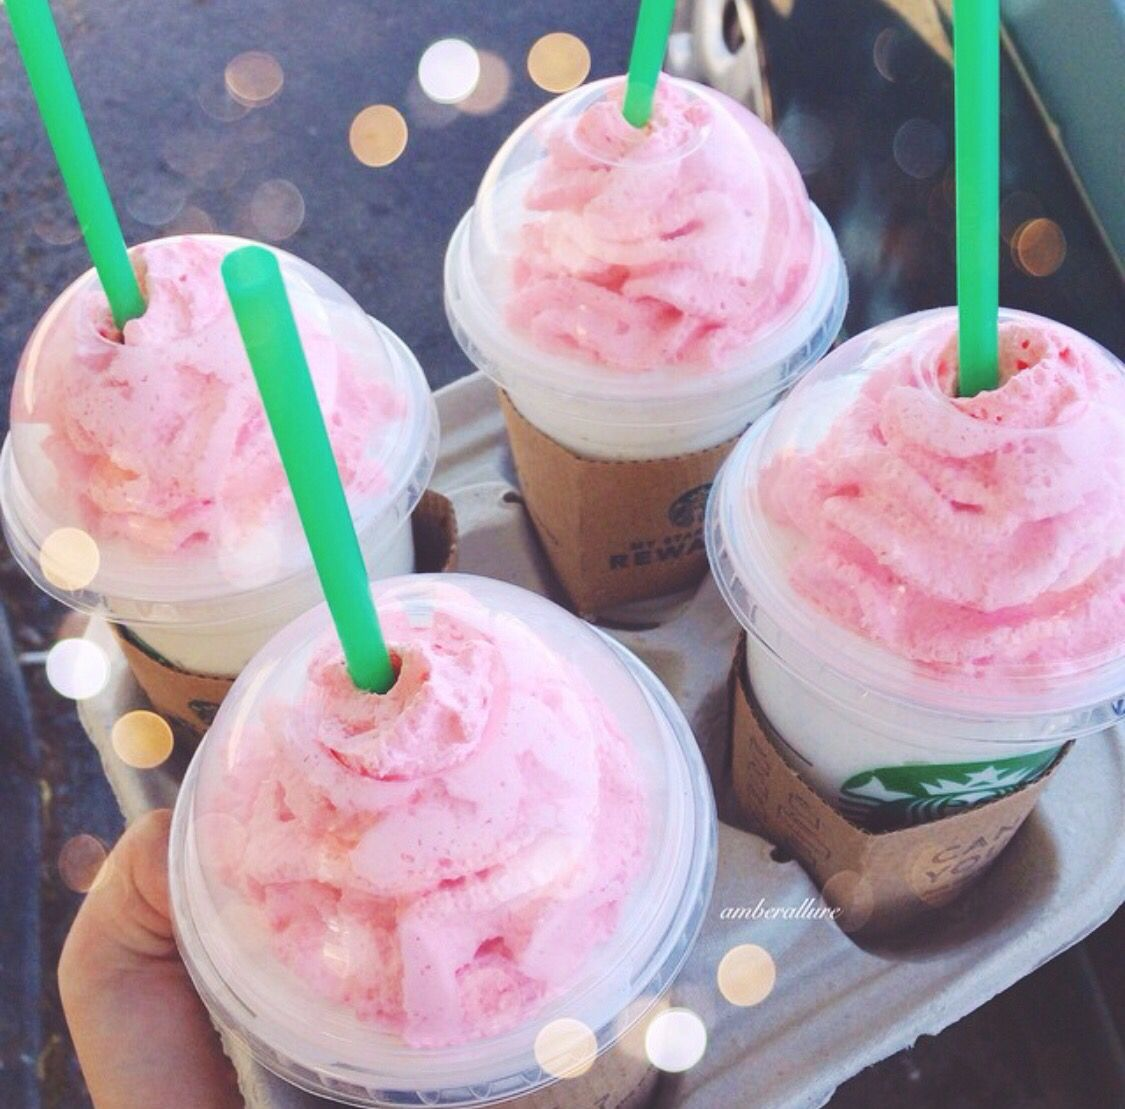 Birthday Cake Fraps Im Kind Of Obsessed With How Pretty They Are